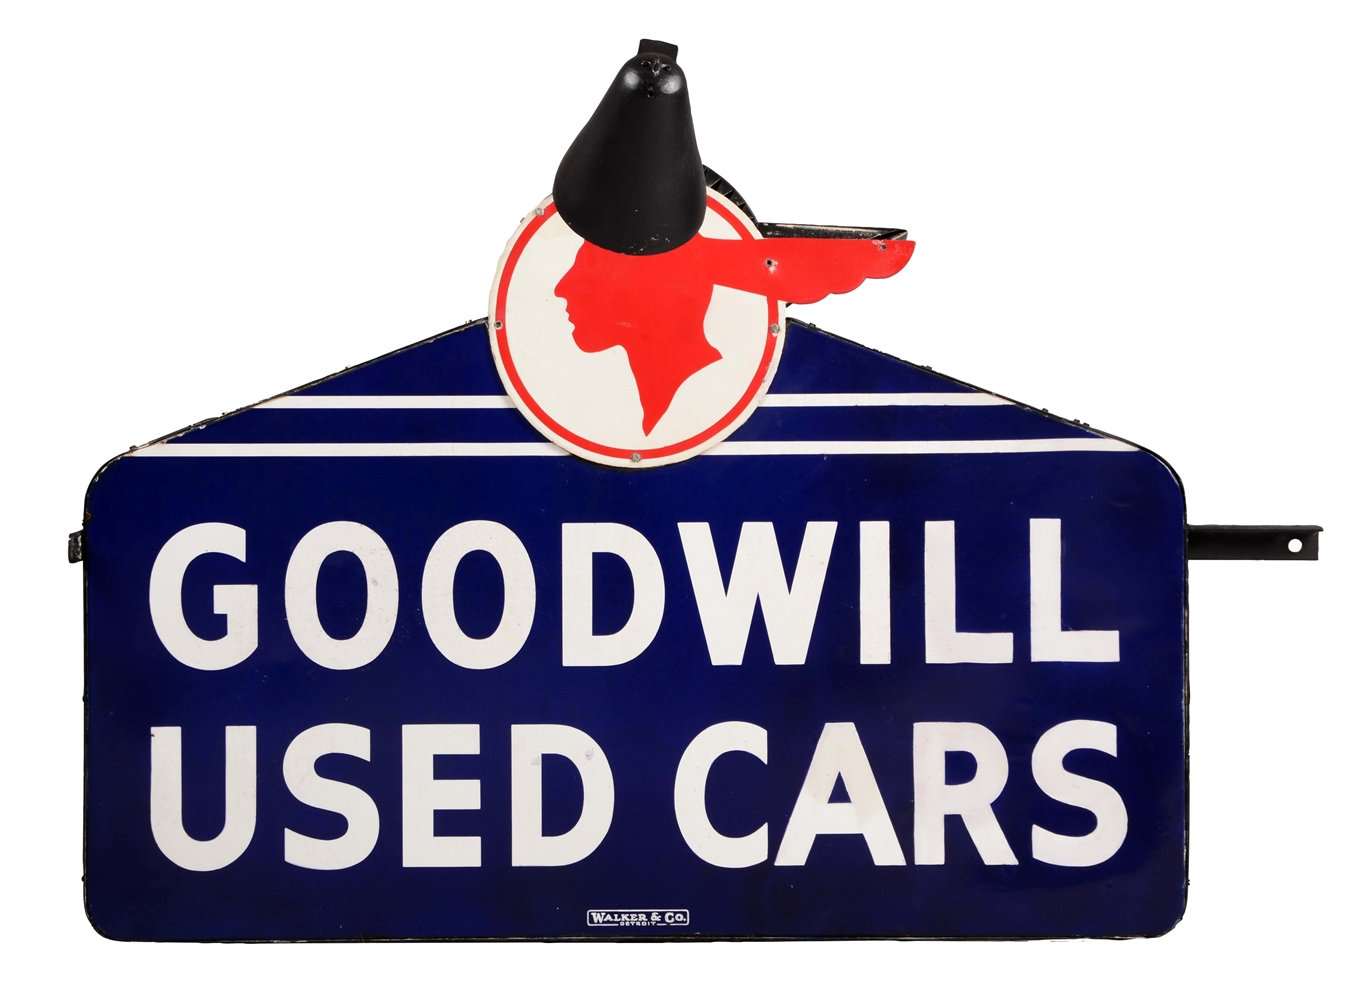 Goodwill Used Cars Die-Cut Porcelain Dealership Sign On Metal Can with Light Sconces.